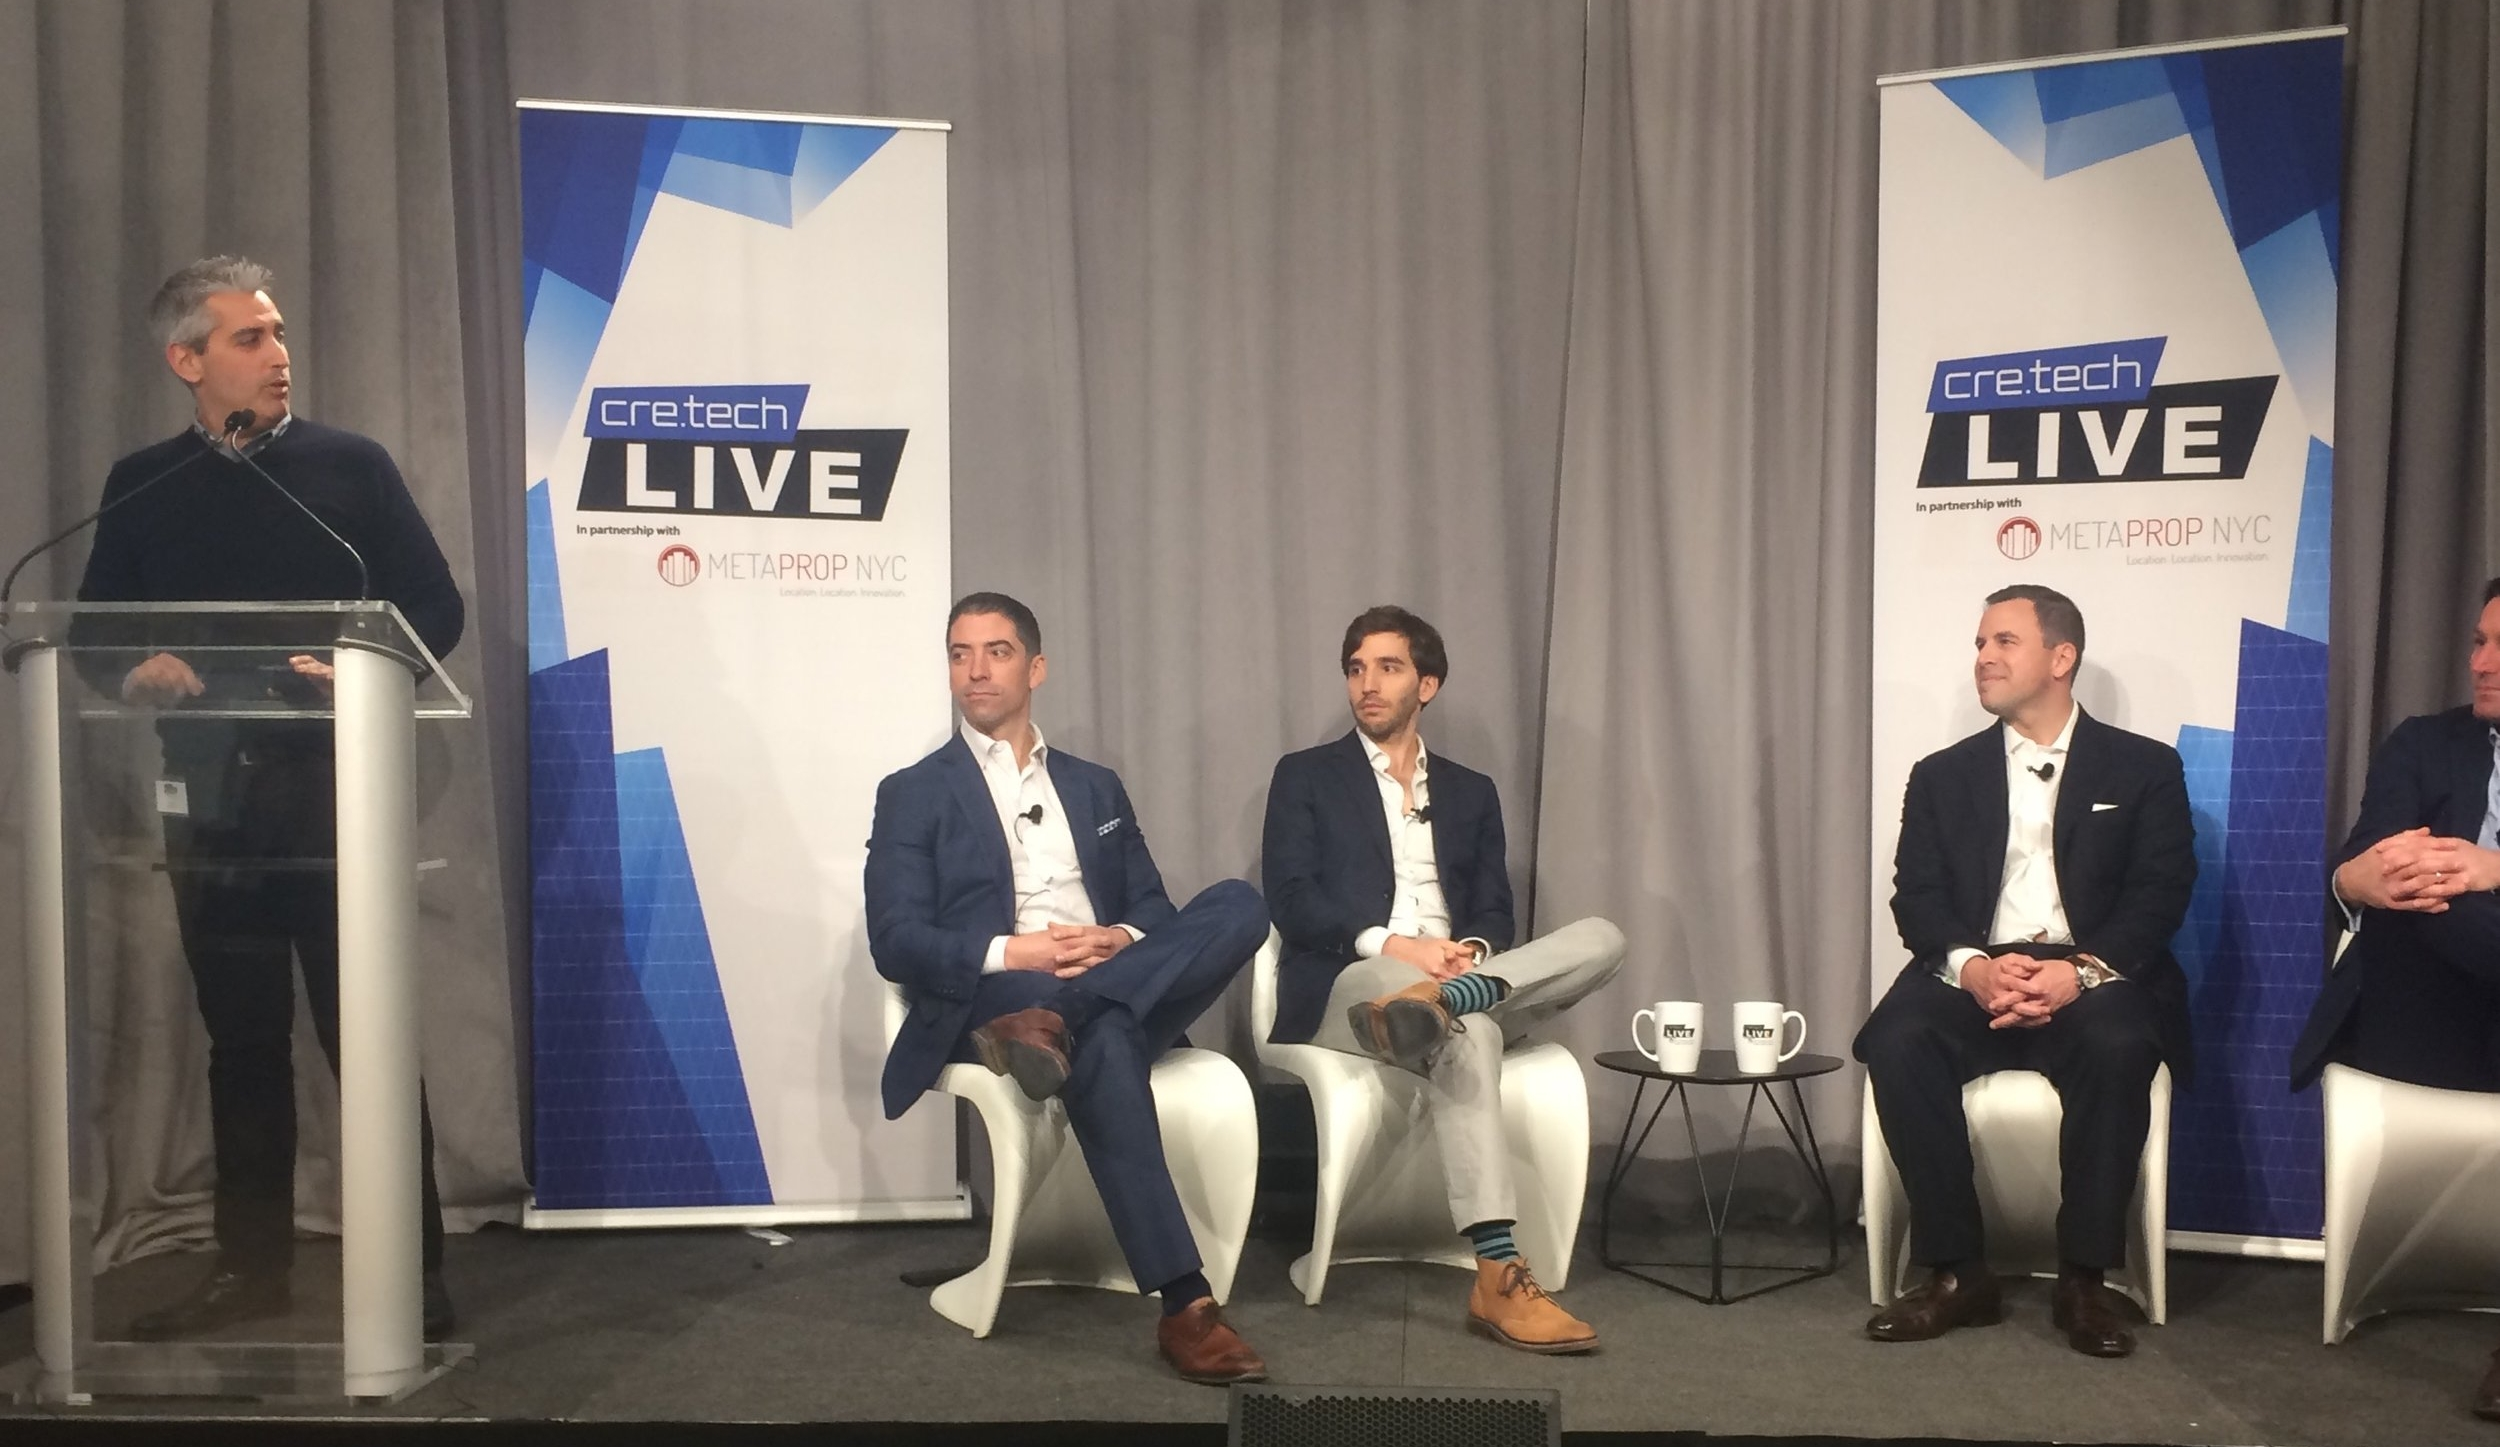 (Left to right) Aaron Block, MetaProp NYC Founding Partner & Managing Director introduces cre.techLIVE expert tech brokers Sacha Zarba, CBRE; Jonathan Wasserstrum, CEO, The SquareFoot;  Jim Wink, JLL, and Eric Thomas, CRESA.